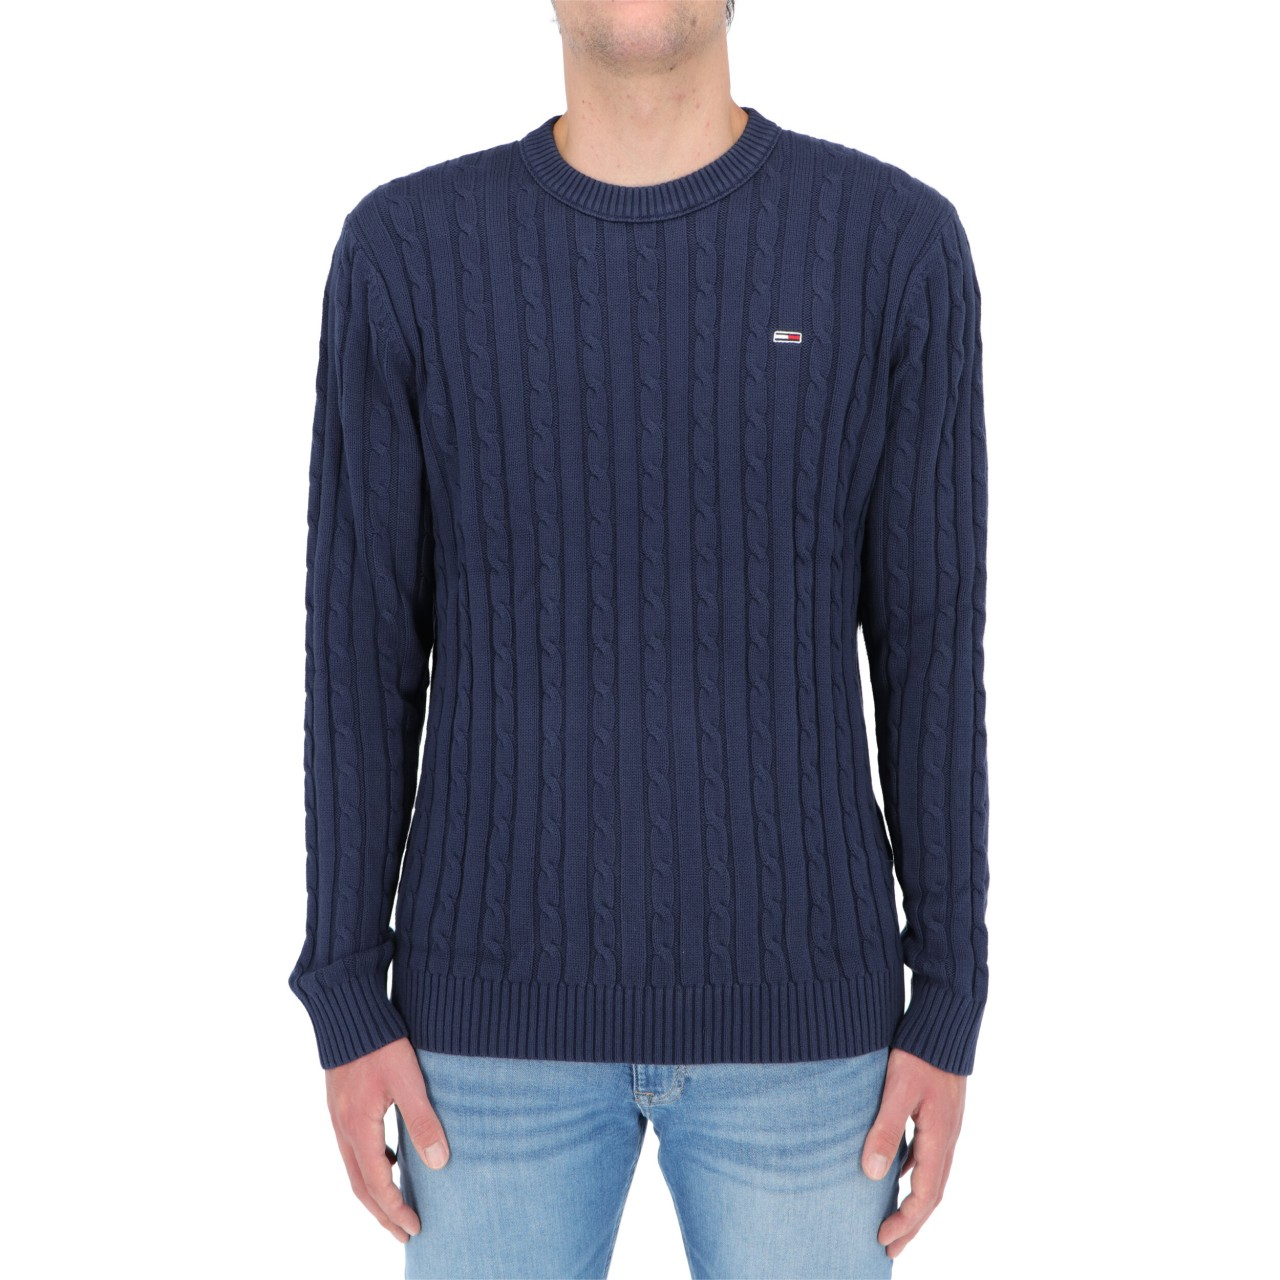 Tommy hilfiger Uomo Maglia Tommy Hilfiger Jeans Uomo Essential Cable Swet 11857Q